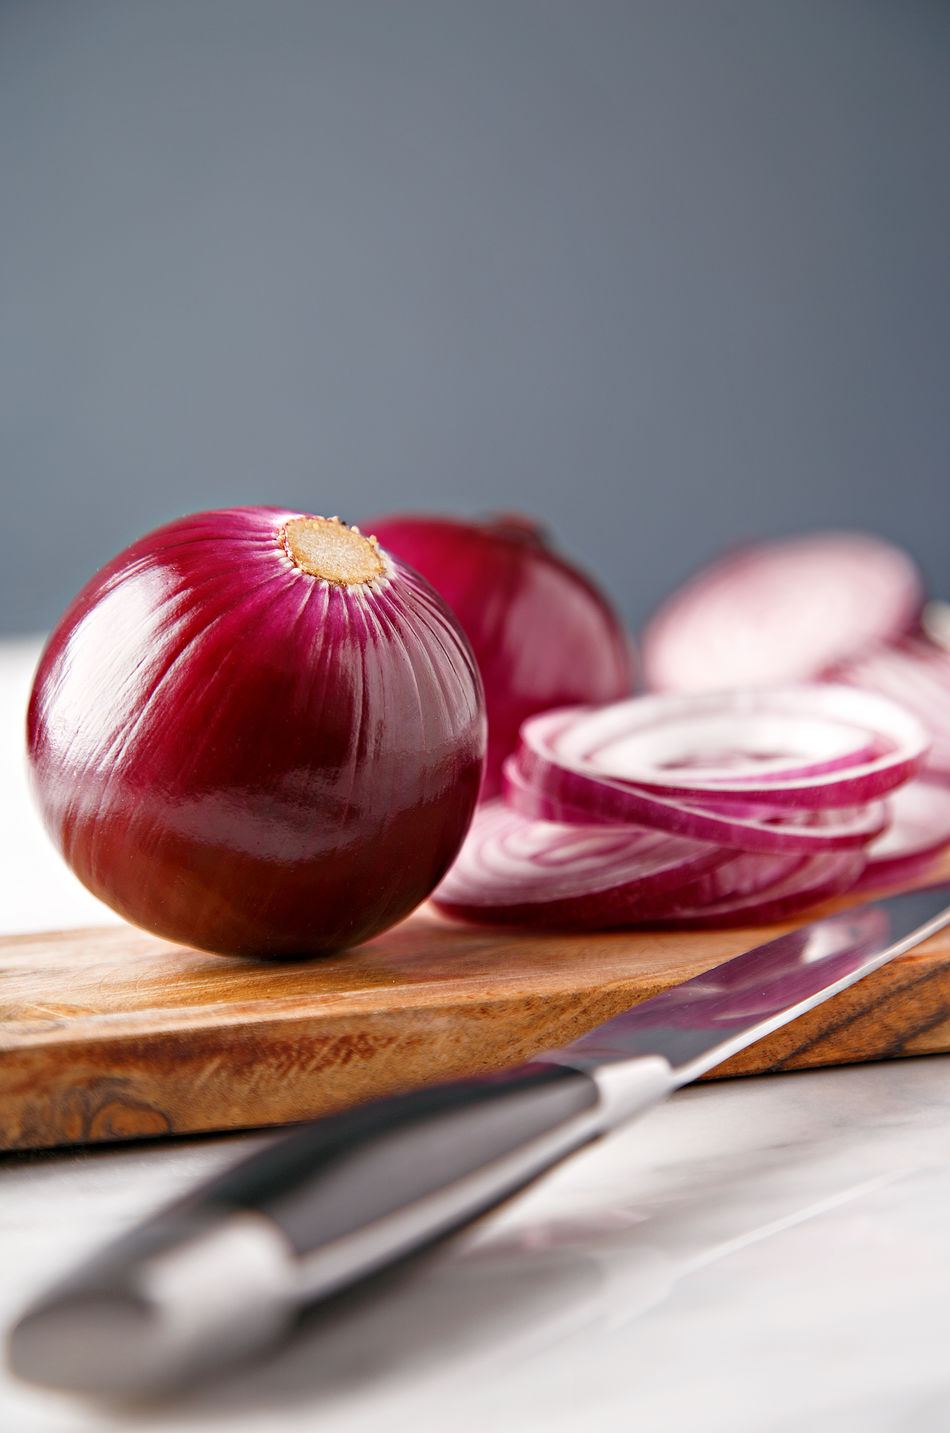 Red onions on a wooden chopping board with a knife on the side Chopping Chopping Board Close-up Food Freshness Healthy Eating Indoors  Knife No People Onion Ready-to-eat Red Onion Studio Shot Vegetable